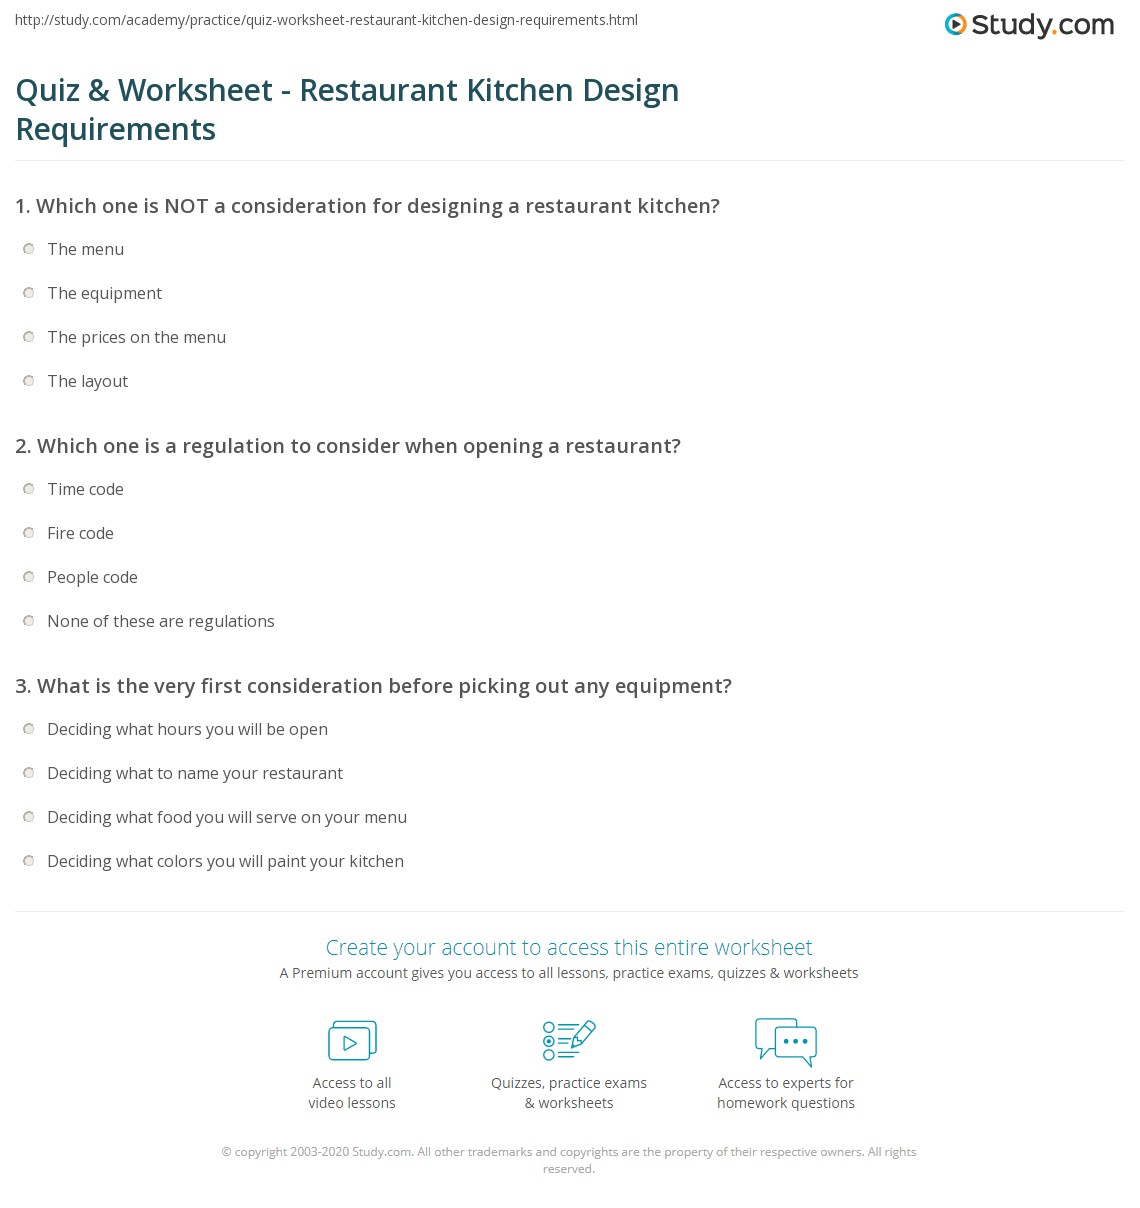 Quiz & Worksheet - Restaurant Kitchen Design Requirements | Study.com